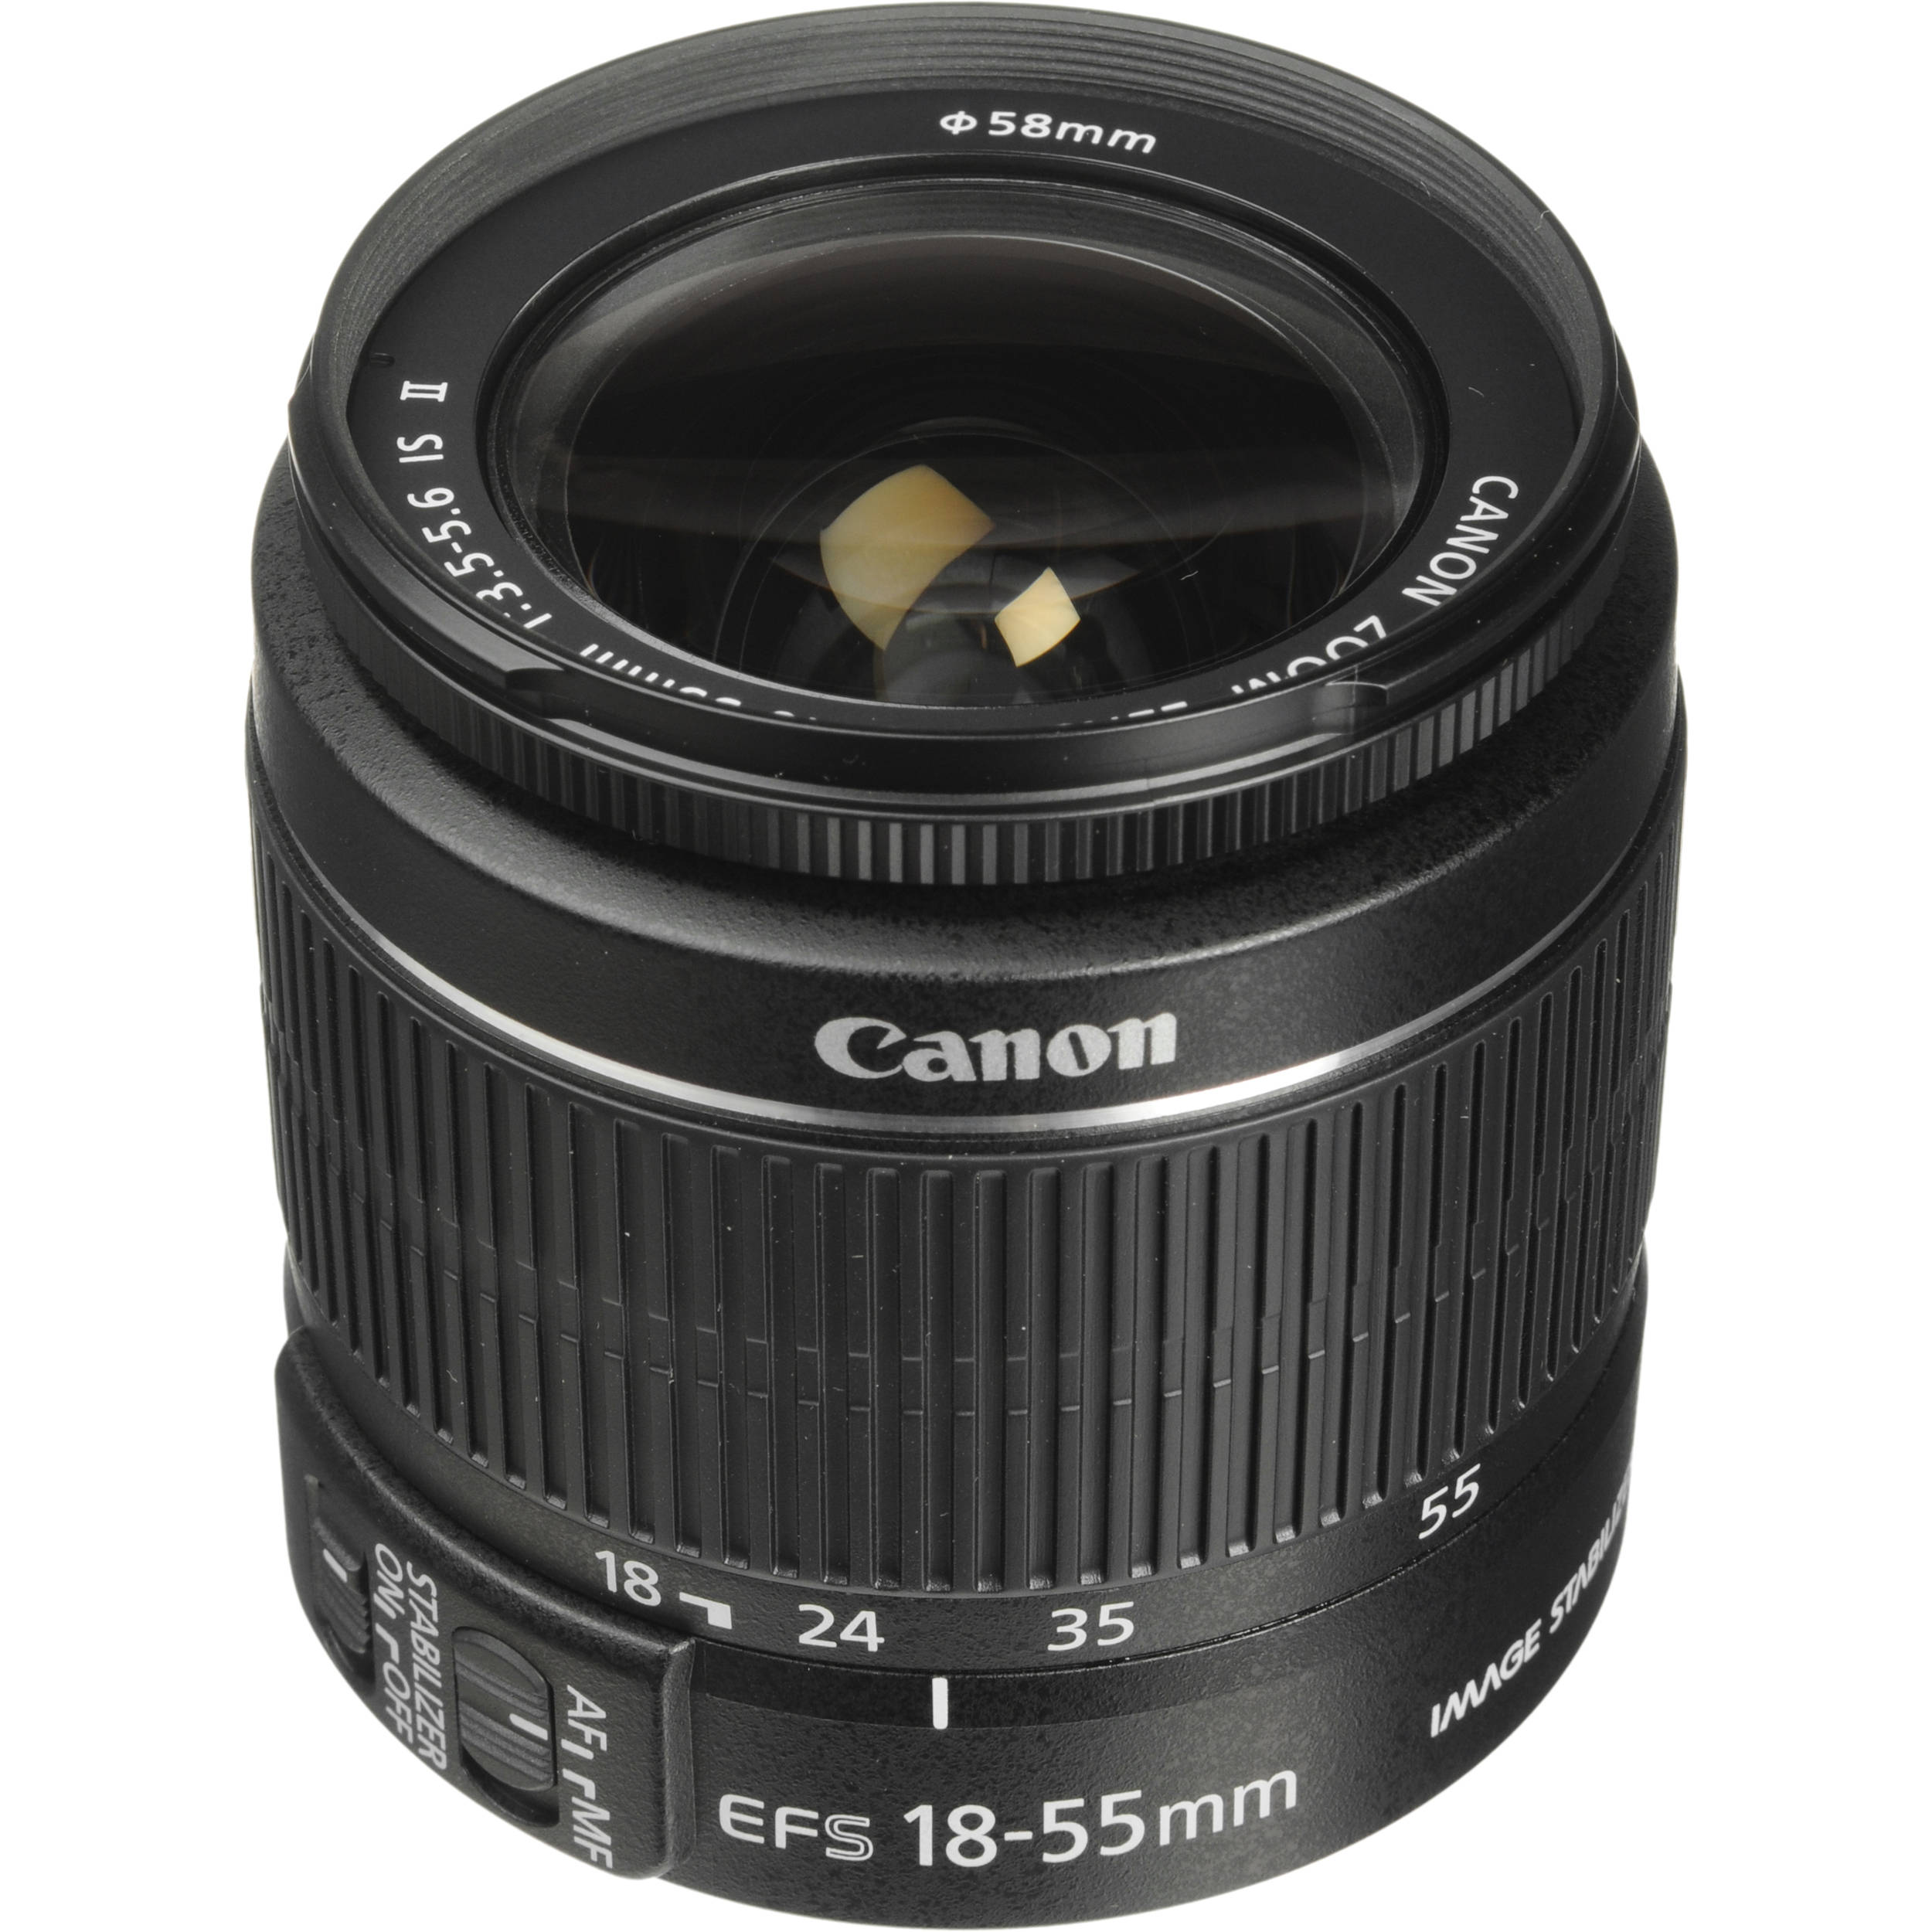 canon ef s 18 55mm f 3 5 5 6 is ii lens white box 2042b002wb. Black Bedroom Furniture Sets. Home Design Ideas